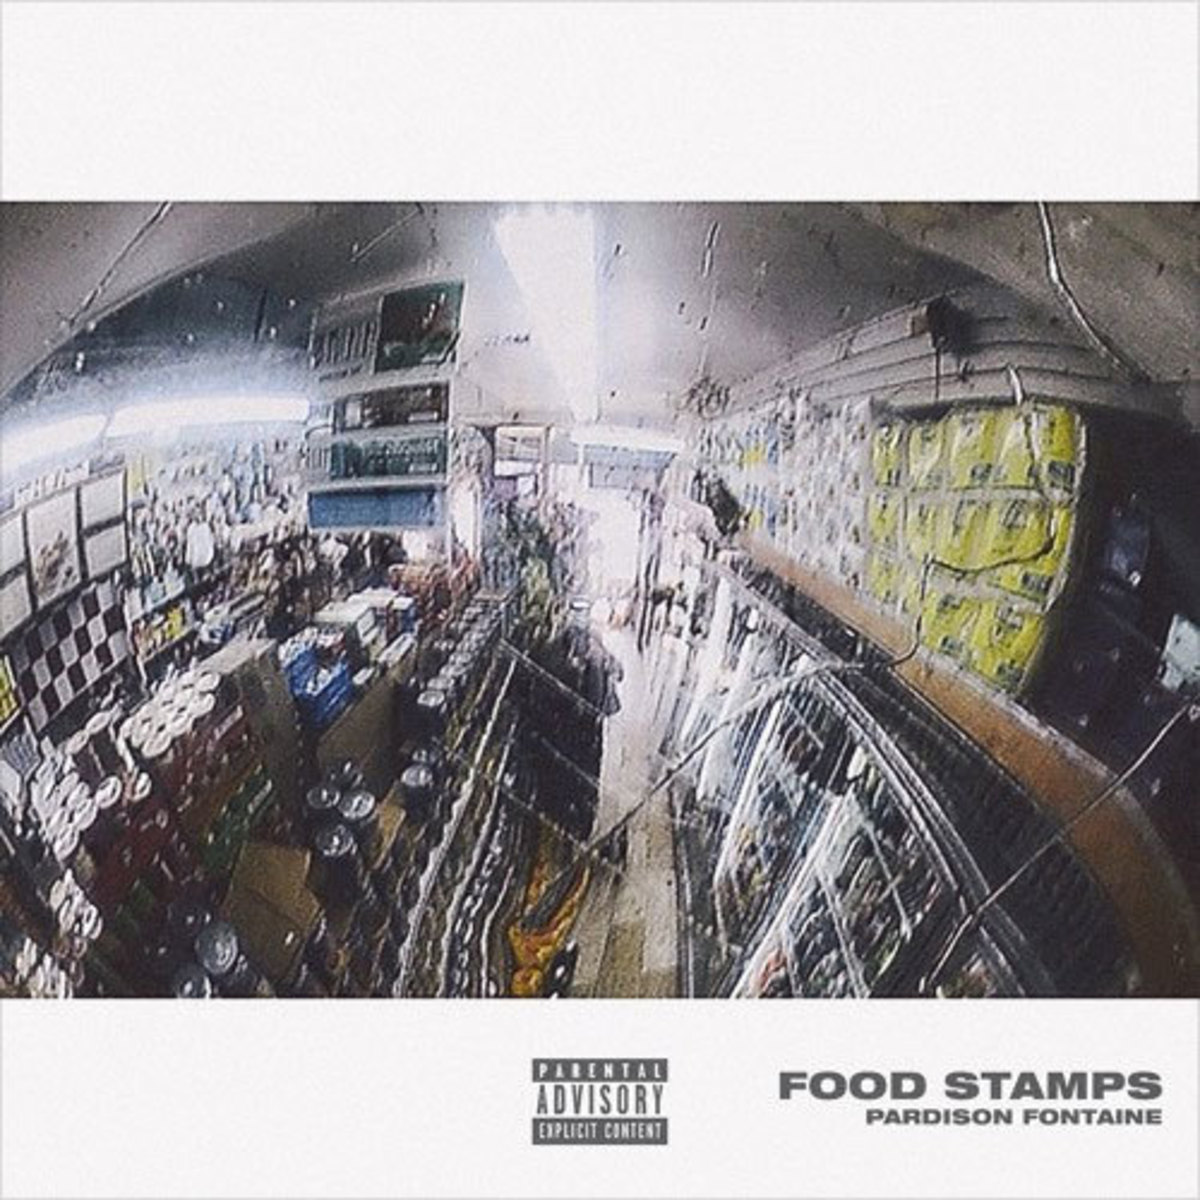 pardison-fontaine-food-stamps.jpg